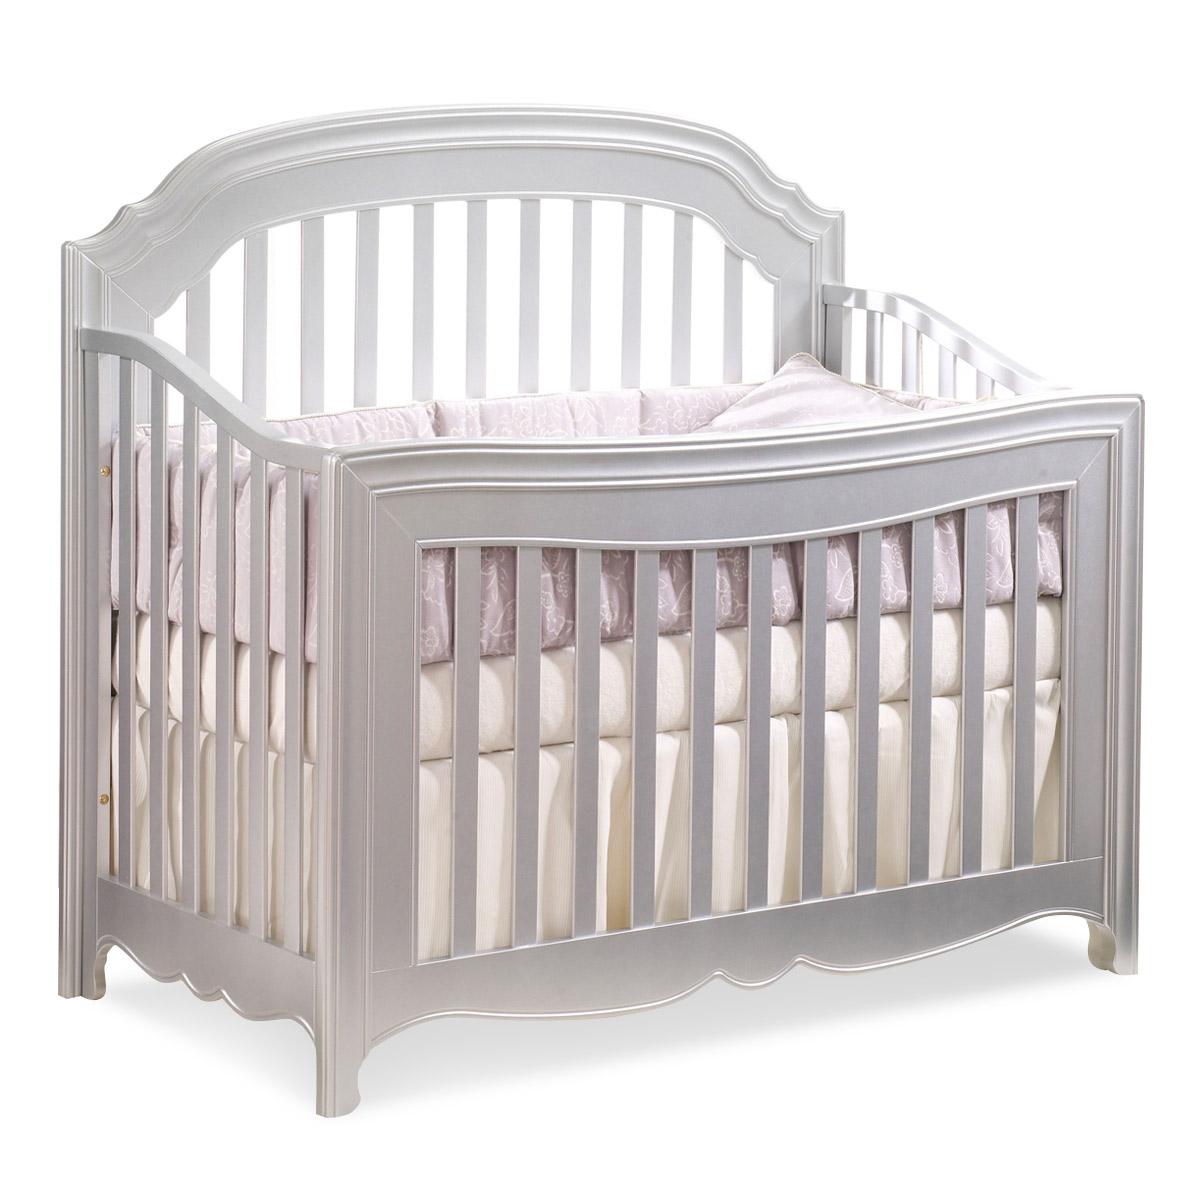 Natart Alexa 2 Piece Nursery Set - 4-in-1 Convertible Crib and Vanity in  Silver FREE SHIPPING